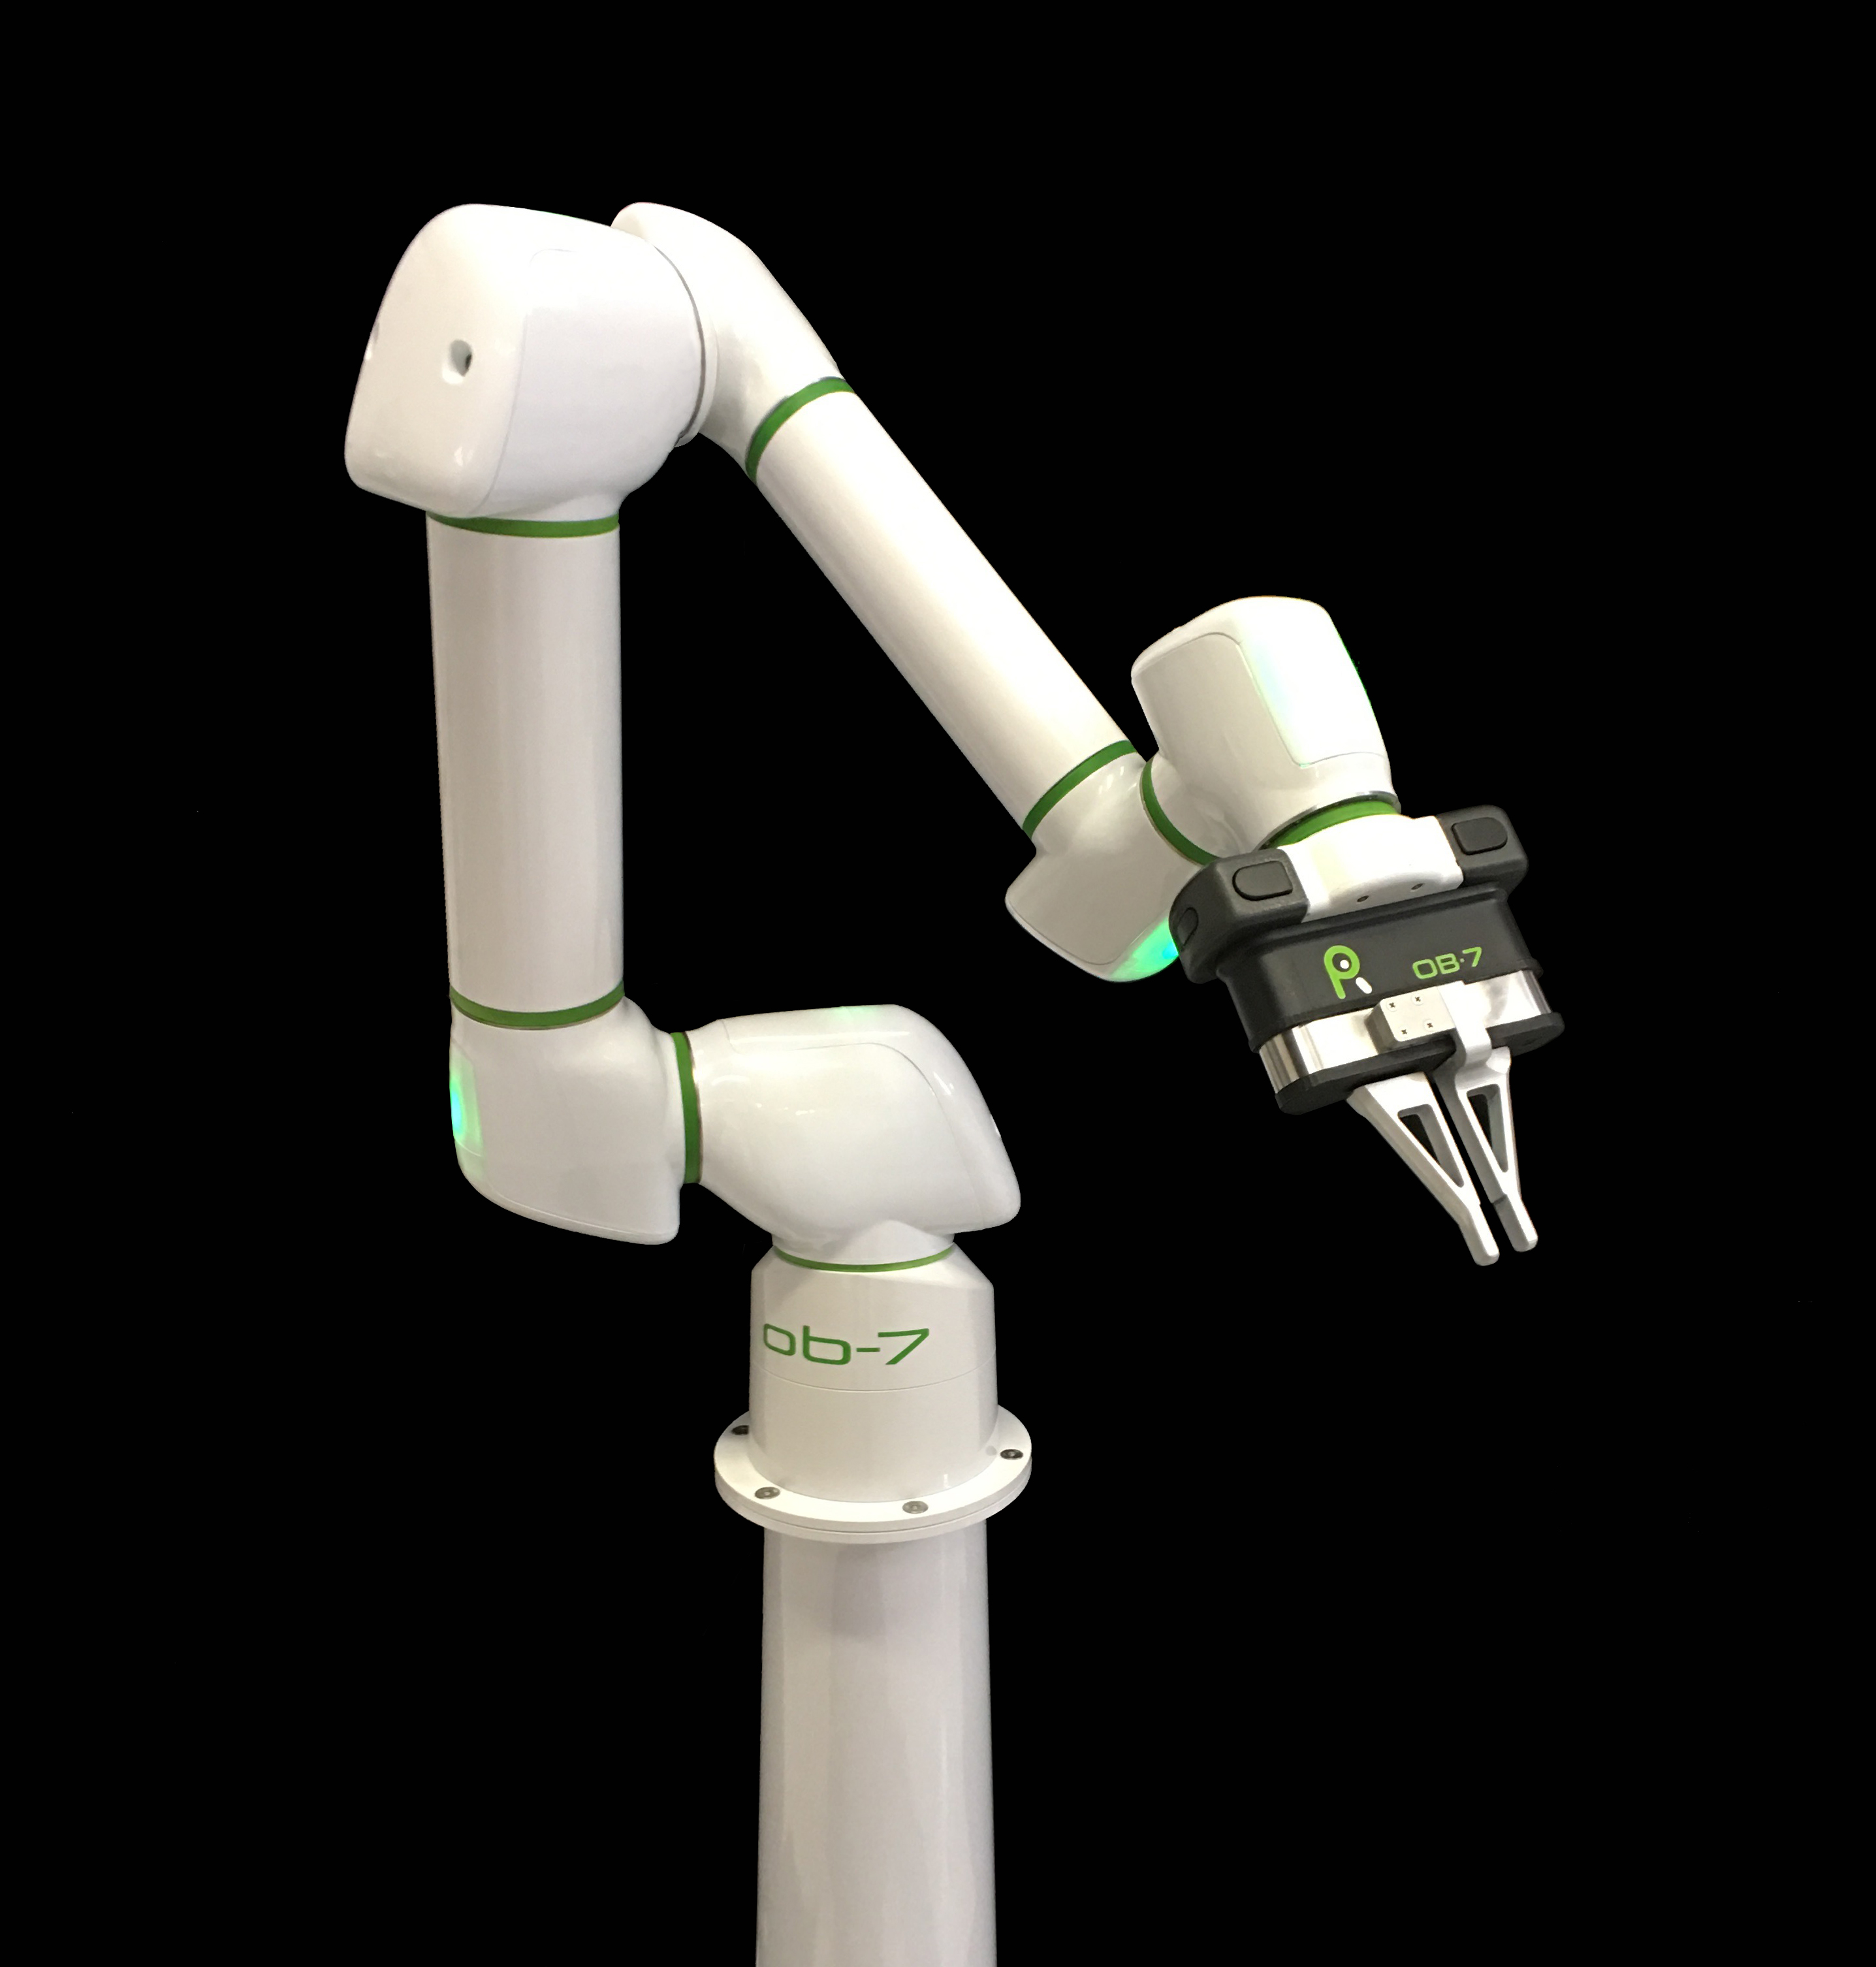 Productive Robotics launches new cobot and buys Cobots Guide